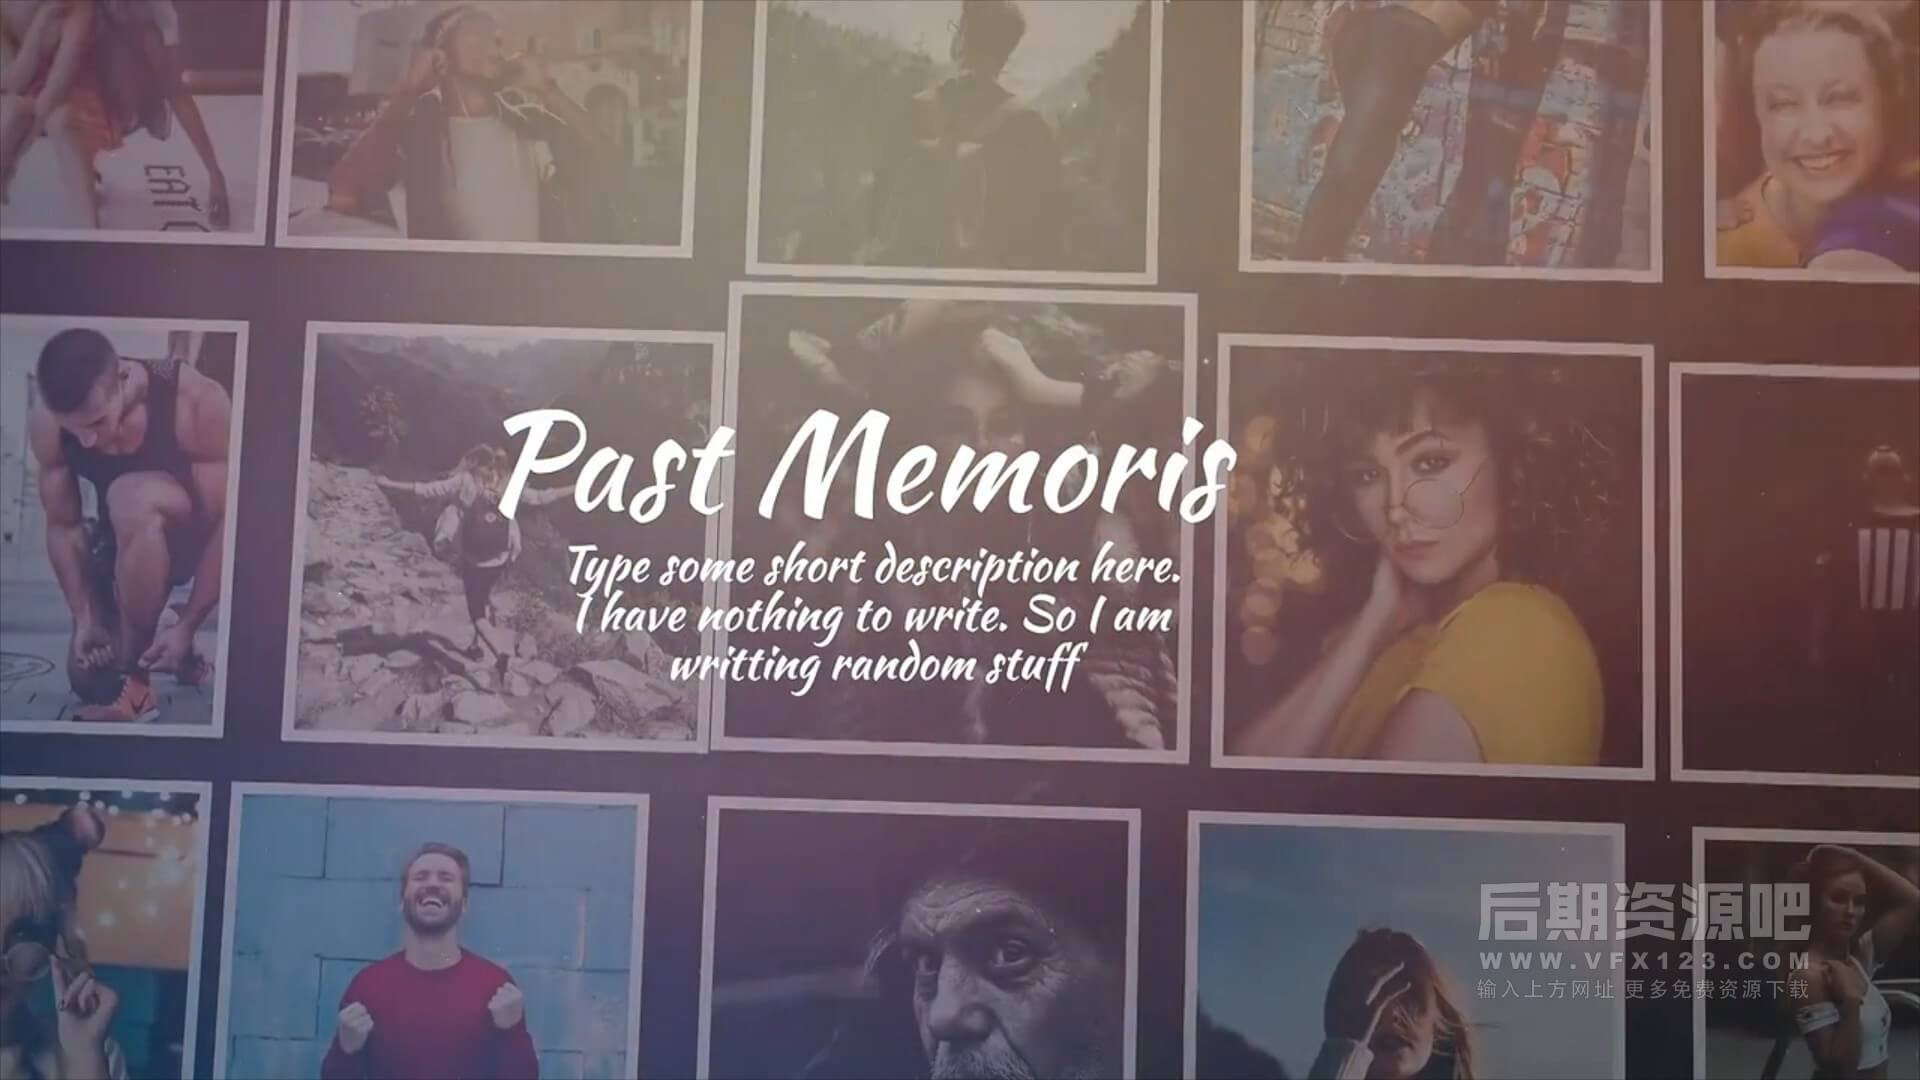 fcpx主题插件 优雅复古风格回忆纪念多图展示相册模板 Past Memories